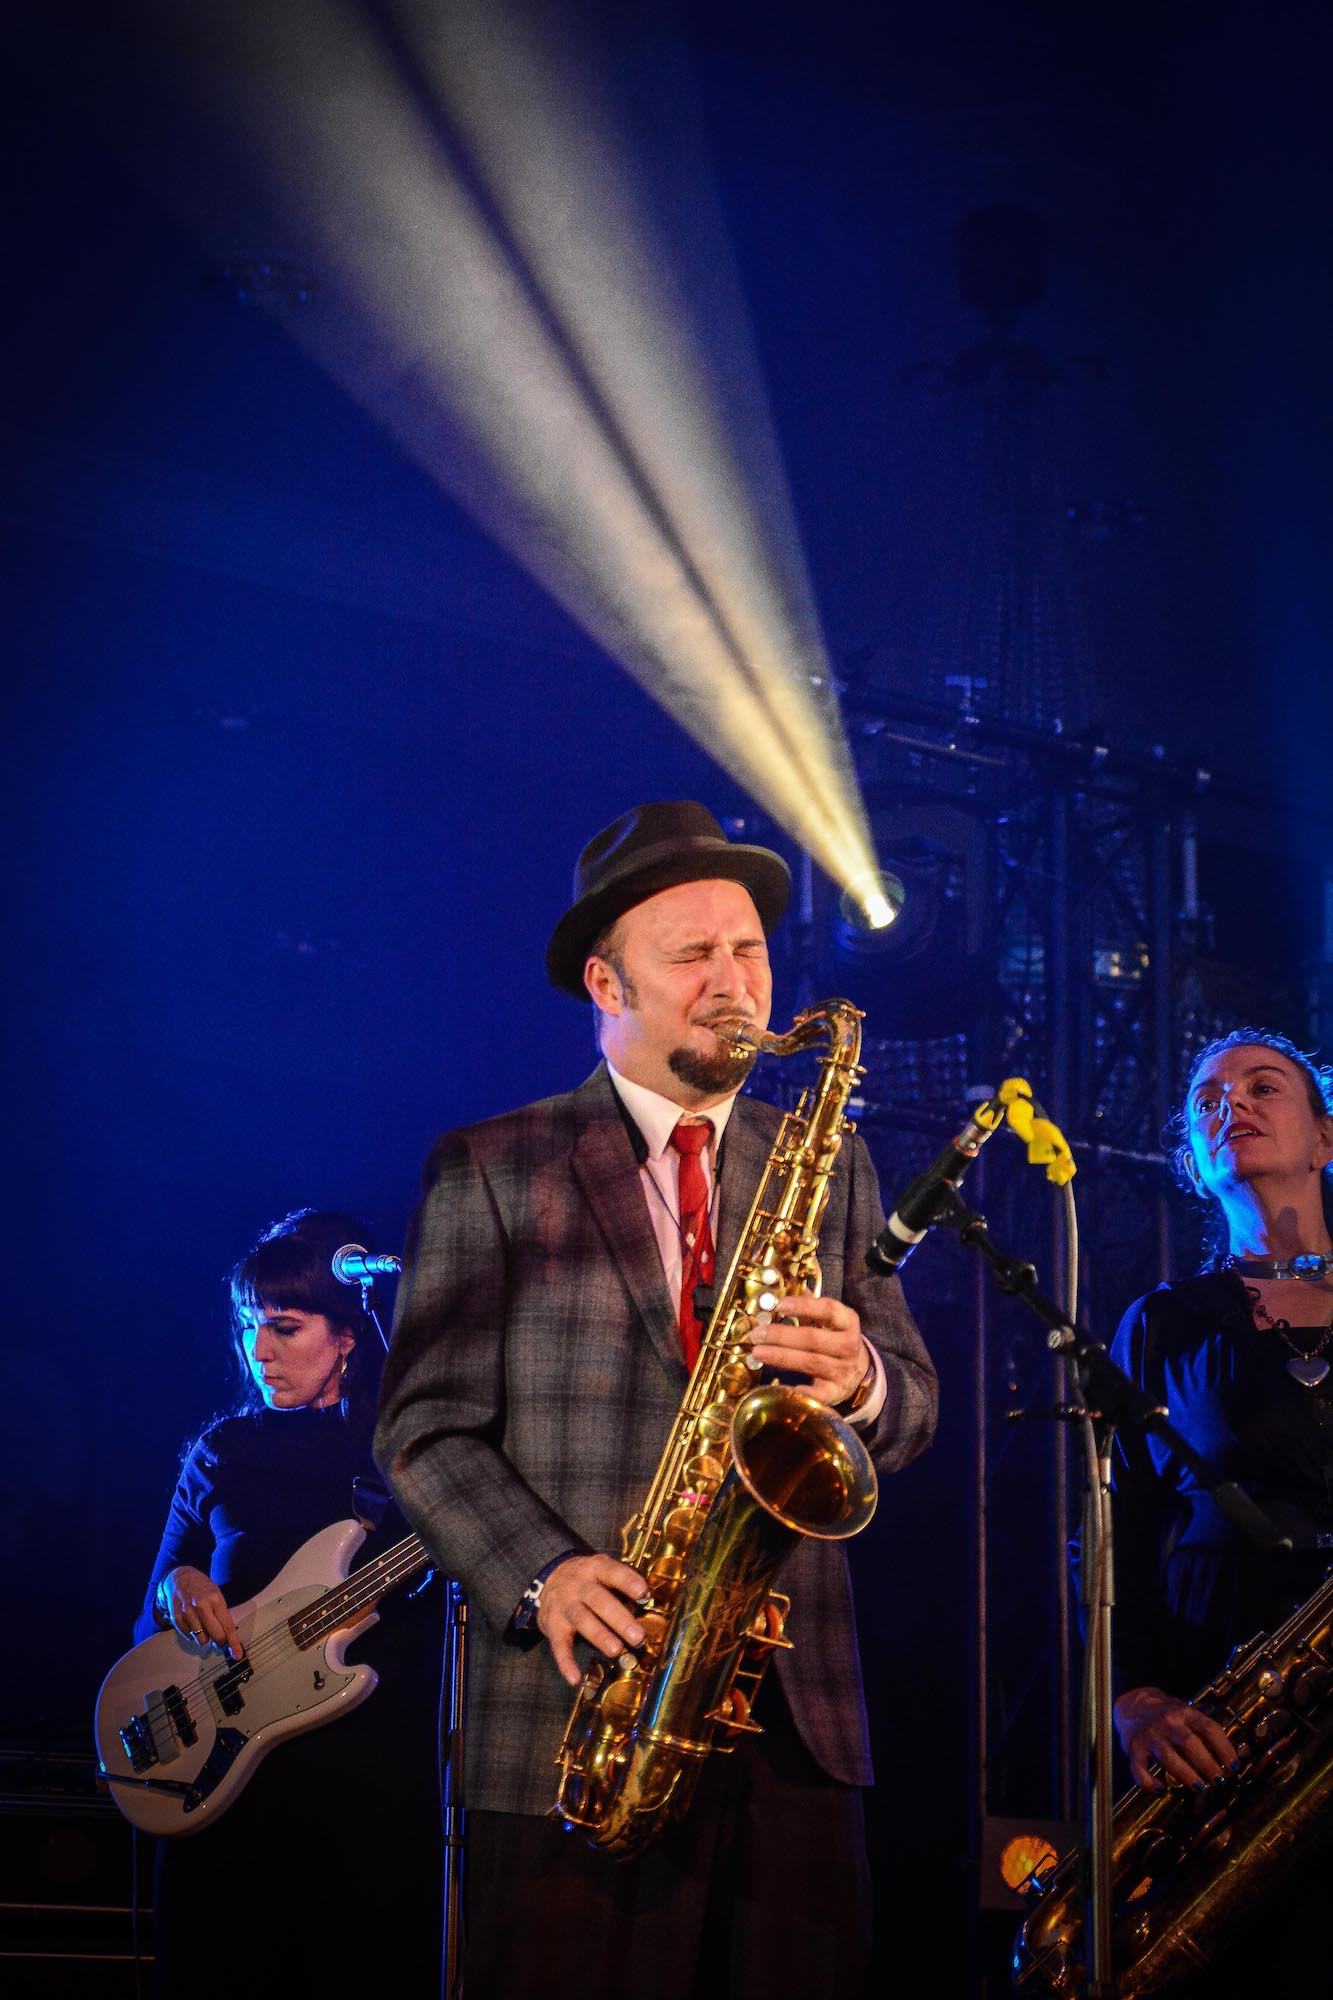 Sax bei Nick Waterhouse